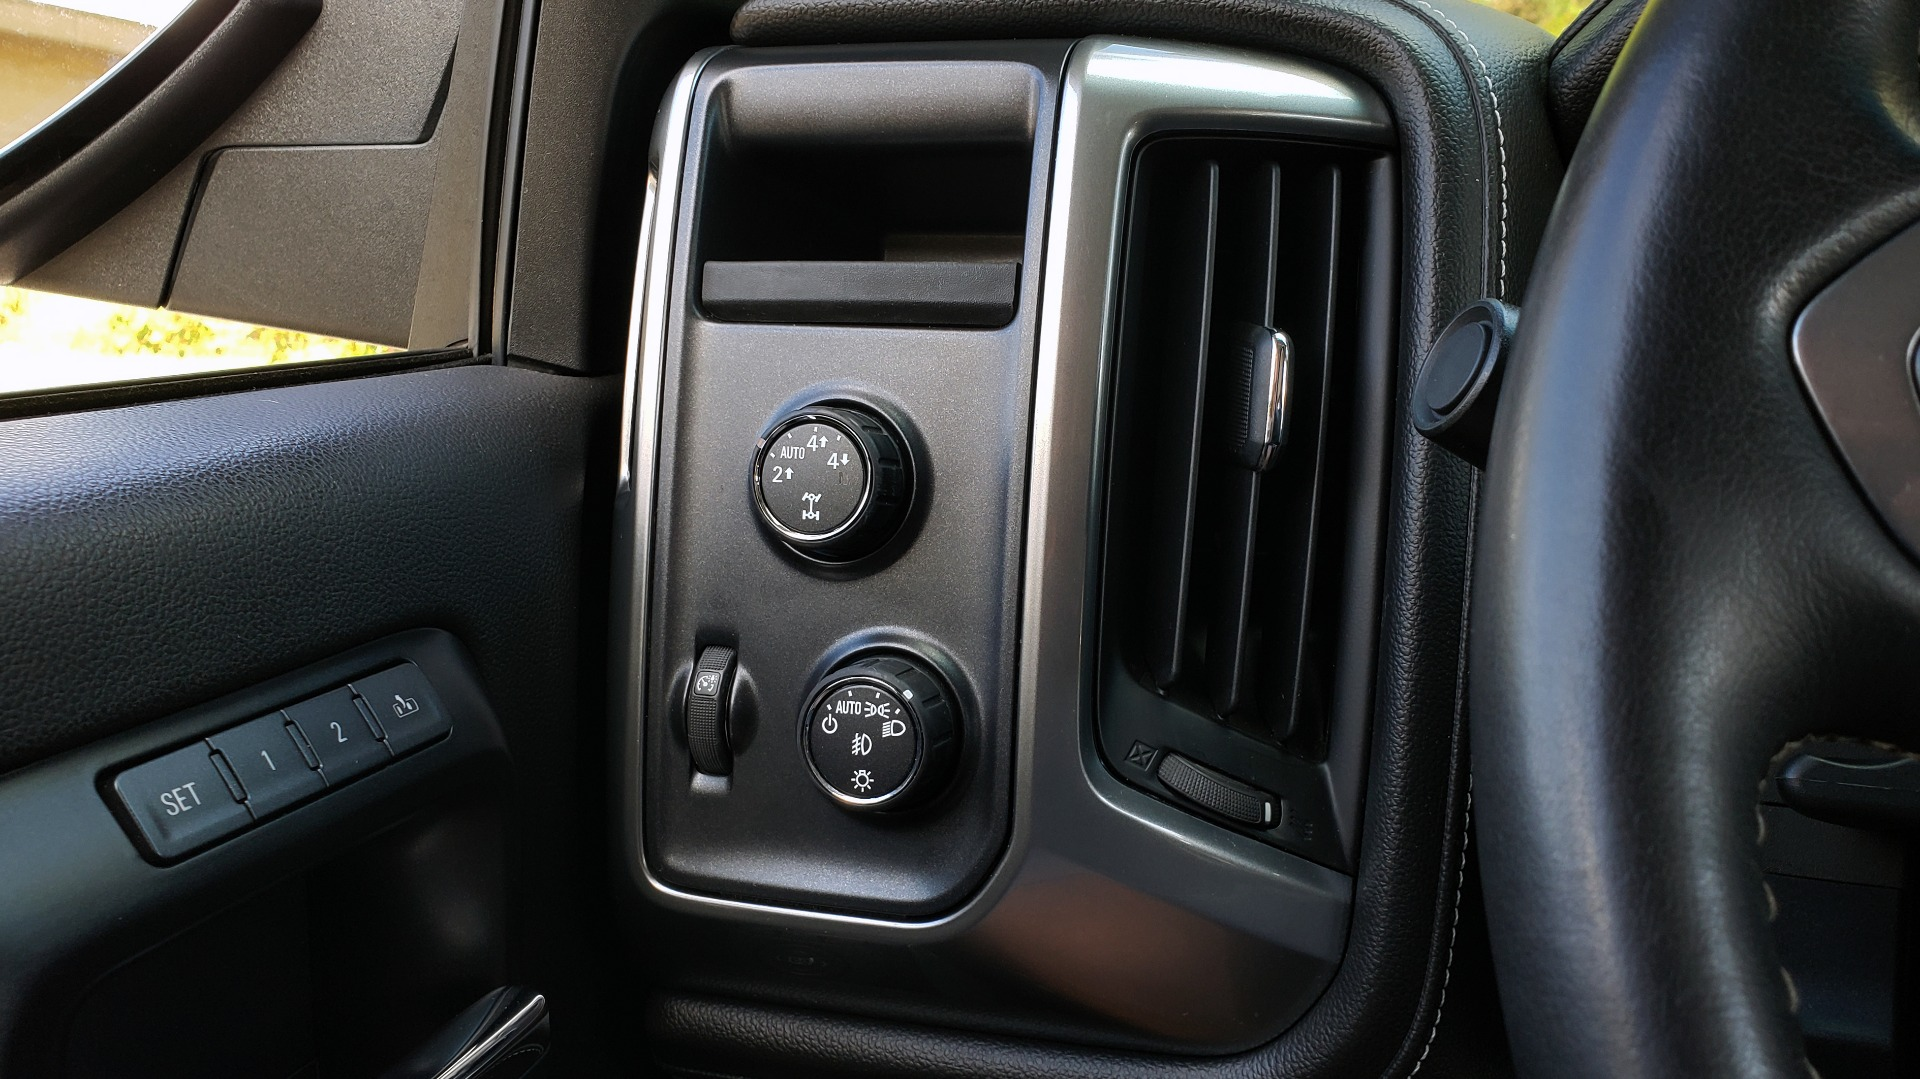 Used 2014 Chevrolet SILVERADO 1500 CREWCAB / LTZ PLUS PKG / 4WD / 2LZ / NAV / BOSE / REARVIEW for sale Sold at Formula Imports in Charlotte NC 28227 42